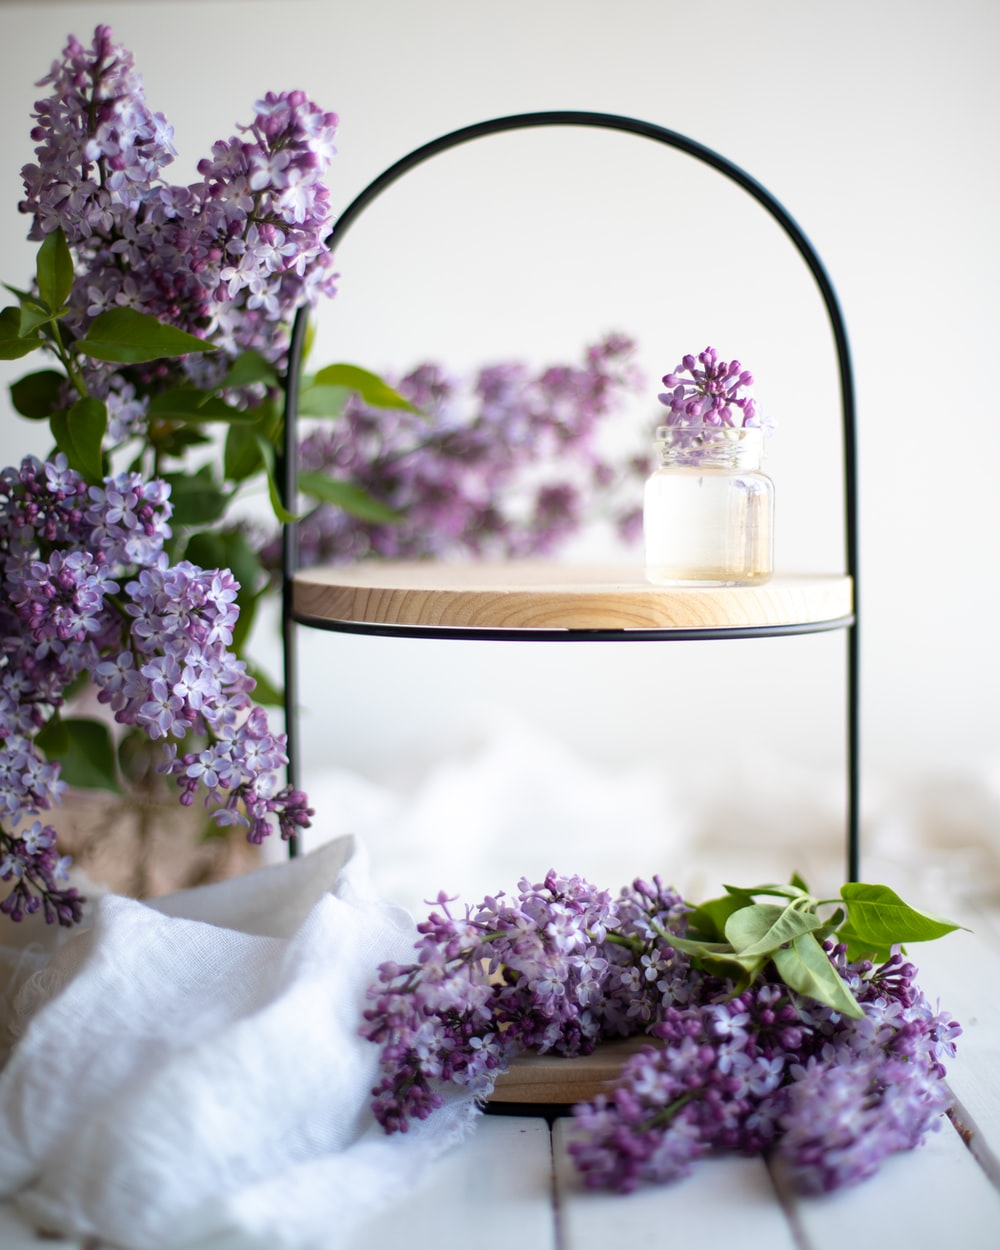 purple flowers on brown wooden round table